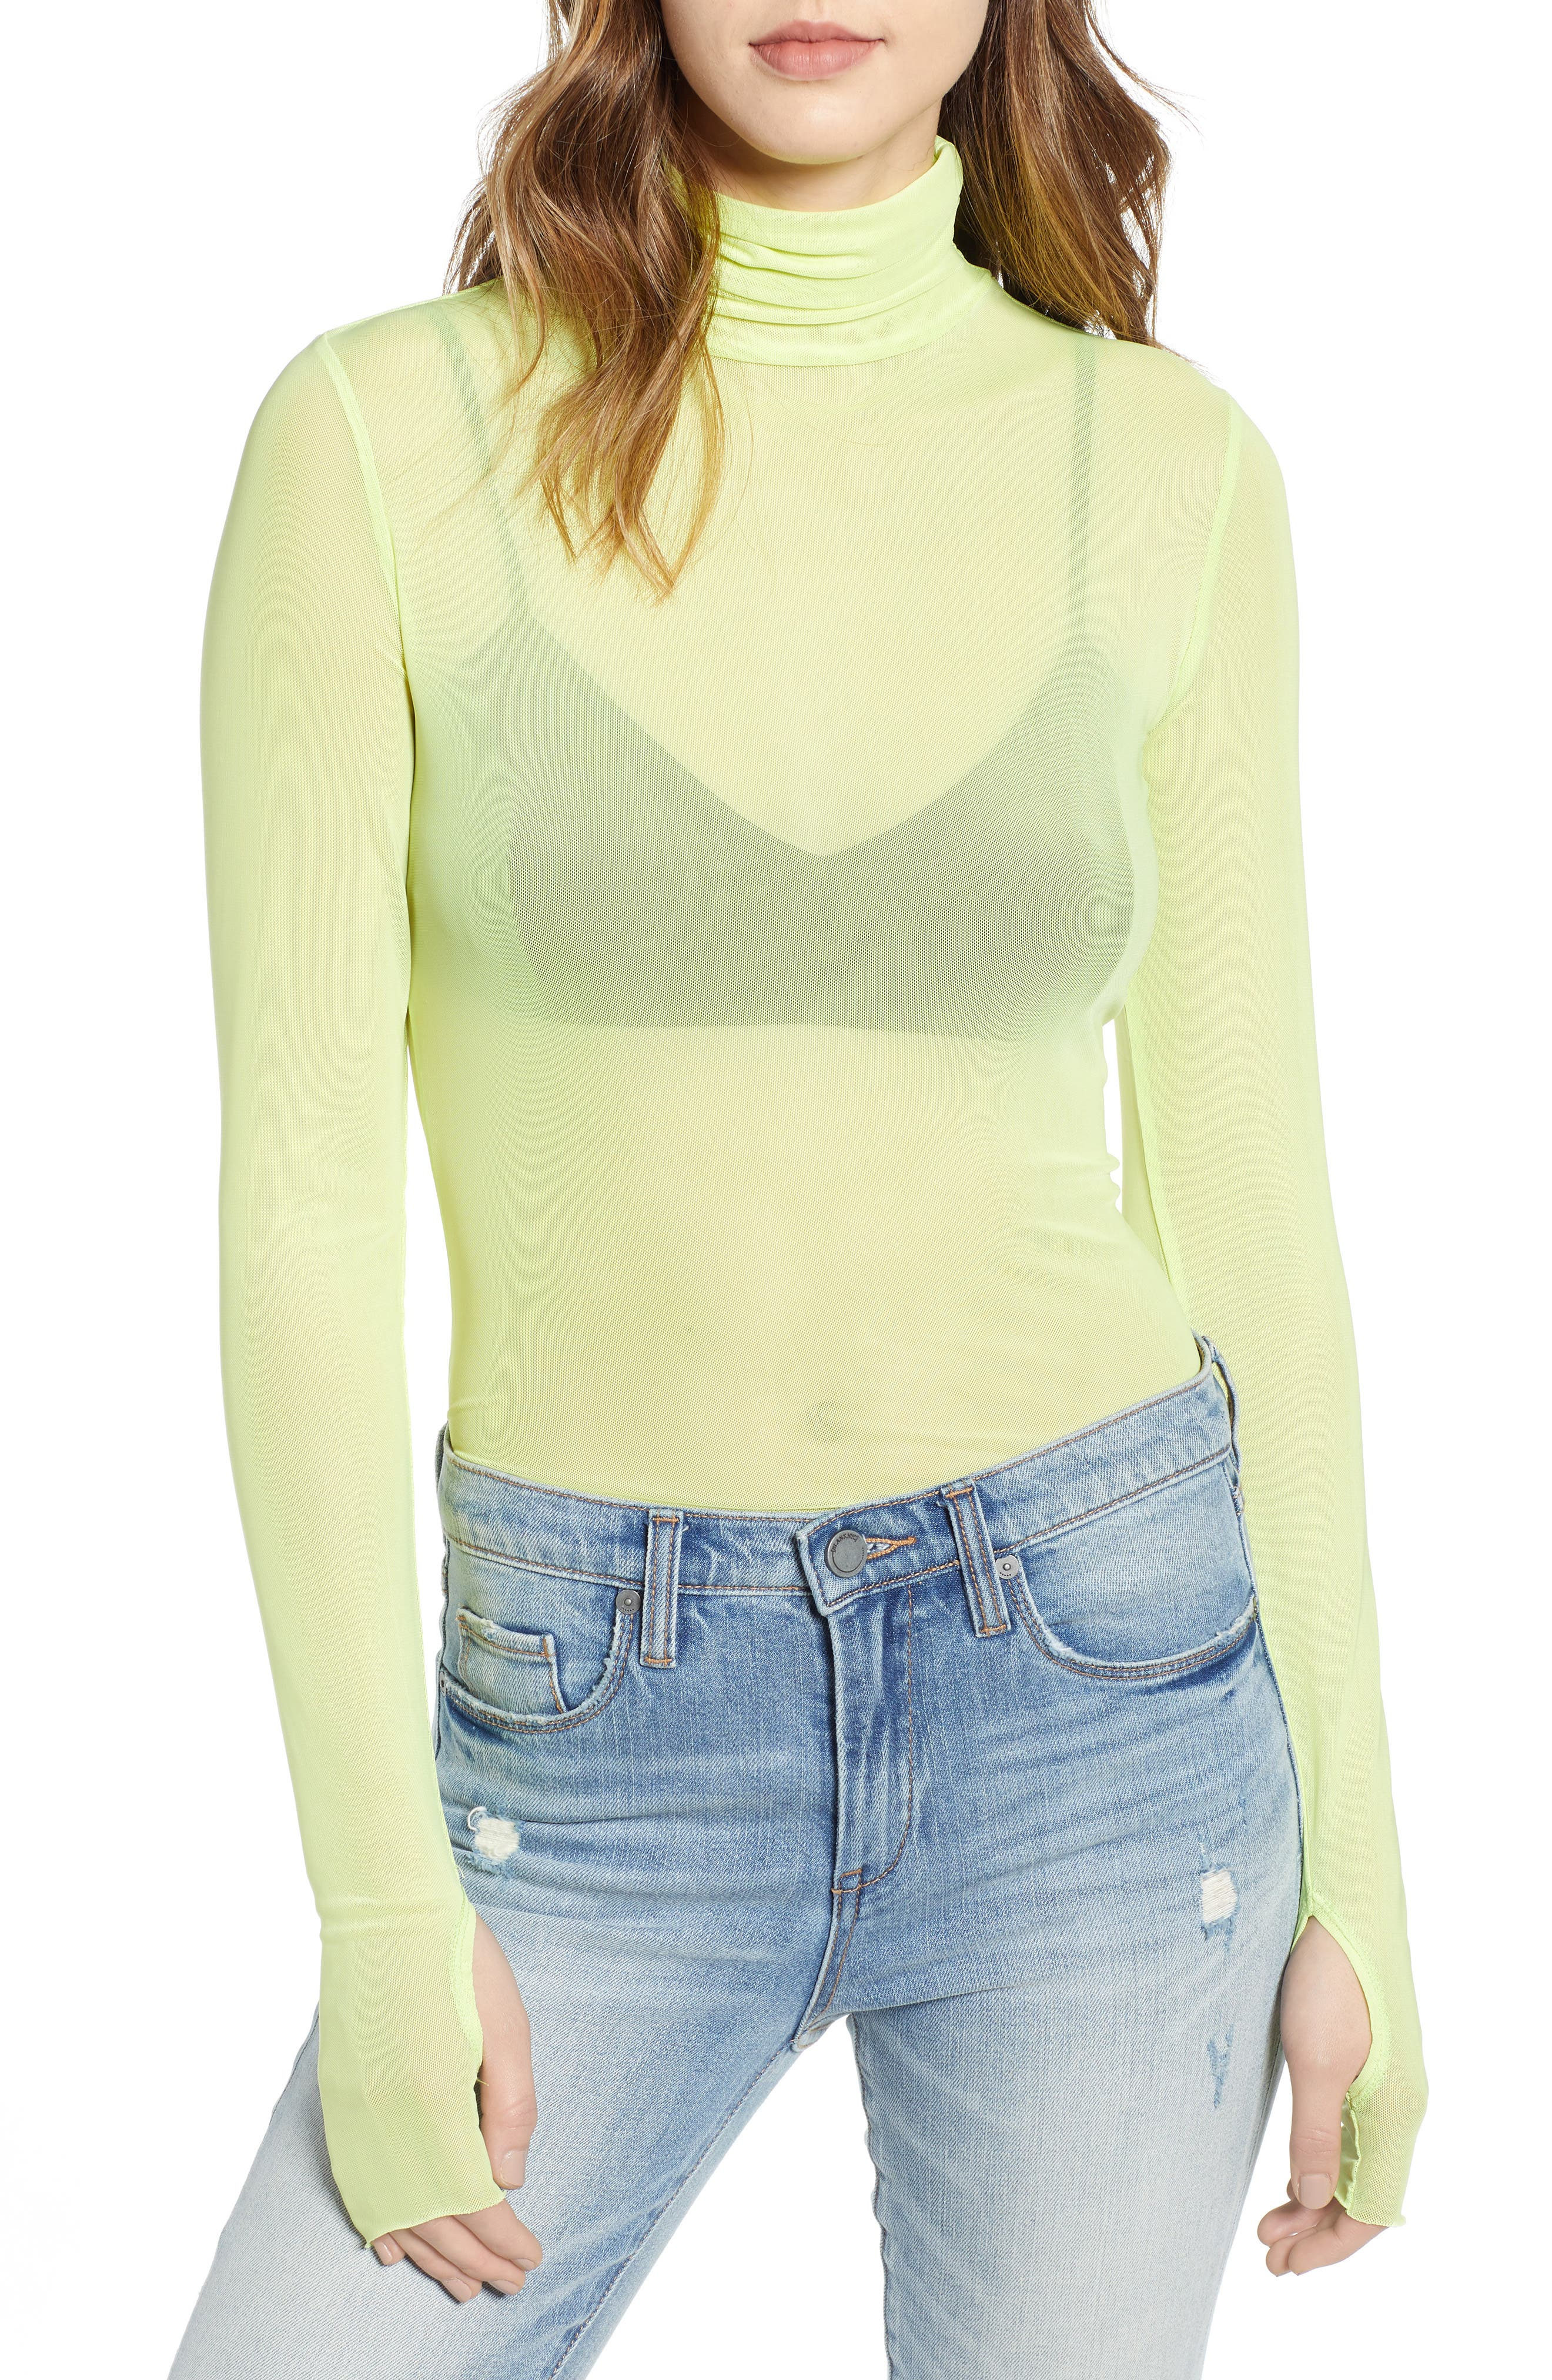 Zadie Semi Sheer Turtleneck, Main, color, 320